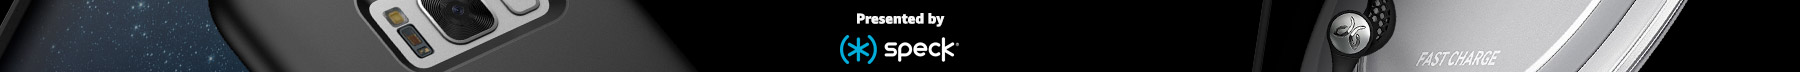 Presented by Speck